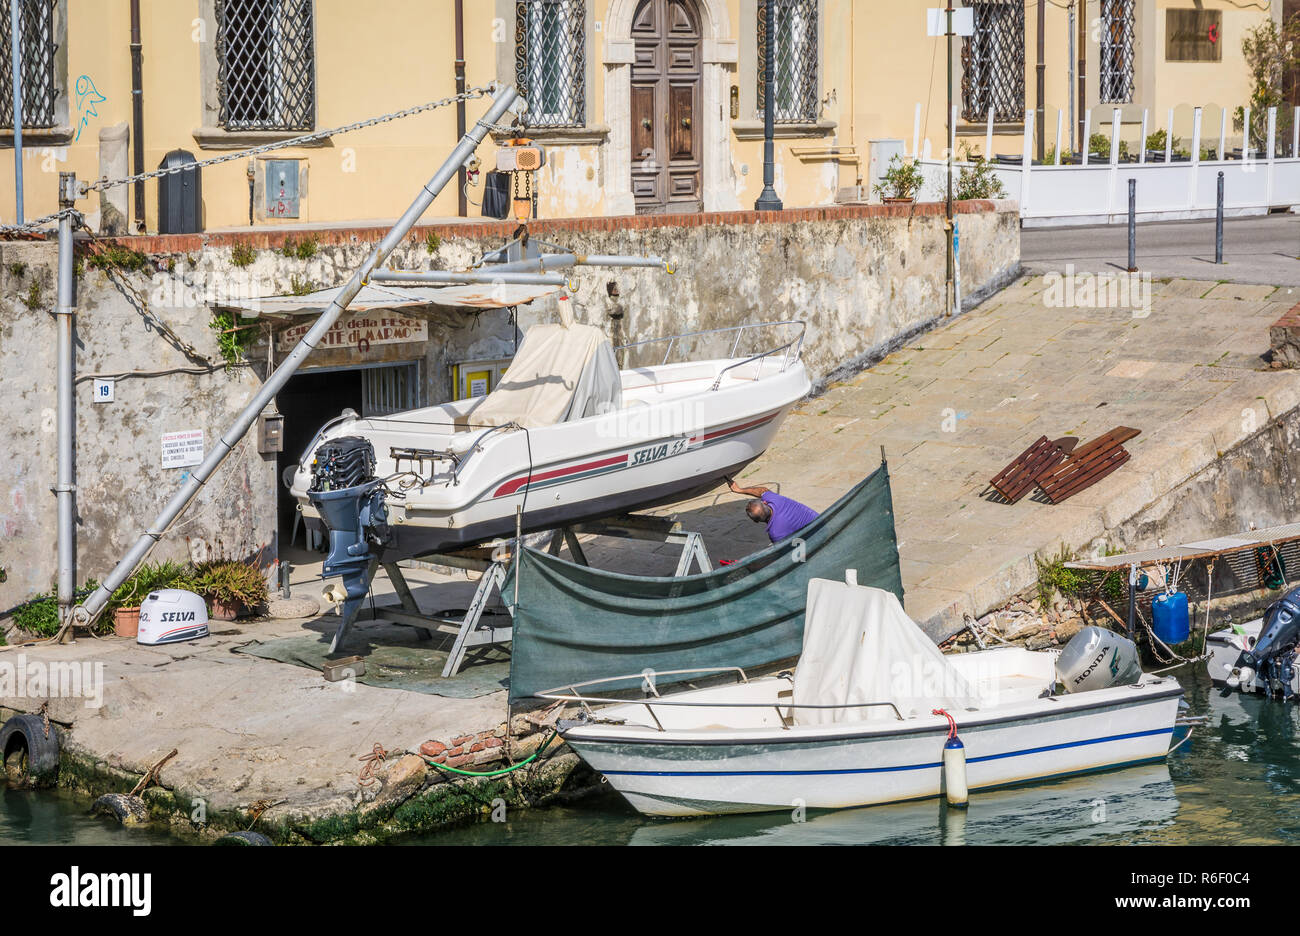 Man restoring vintage wooden rowing boat in the Venice quarter of Livorno, Tuscany, Italy - Stock Image